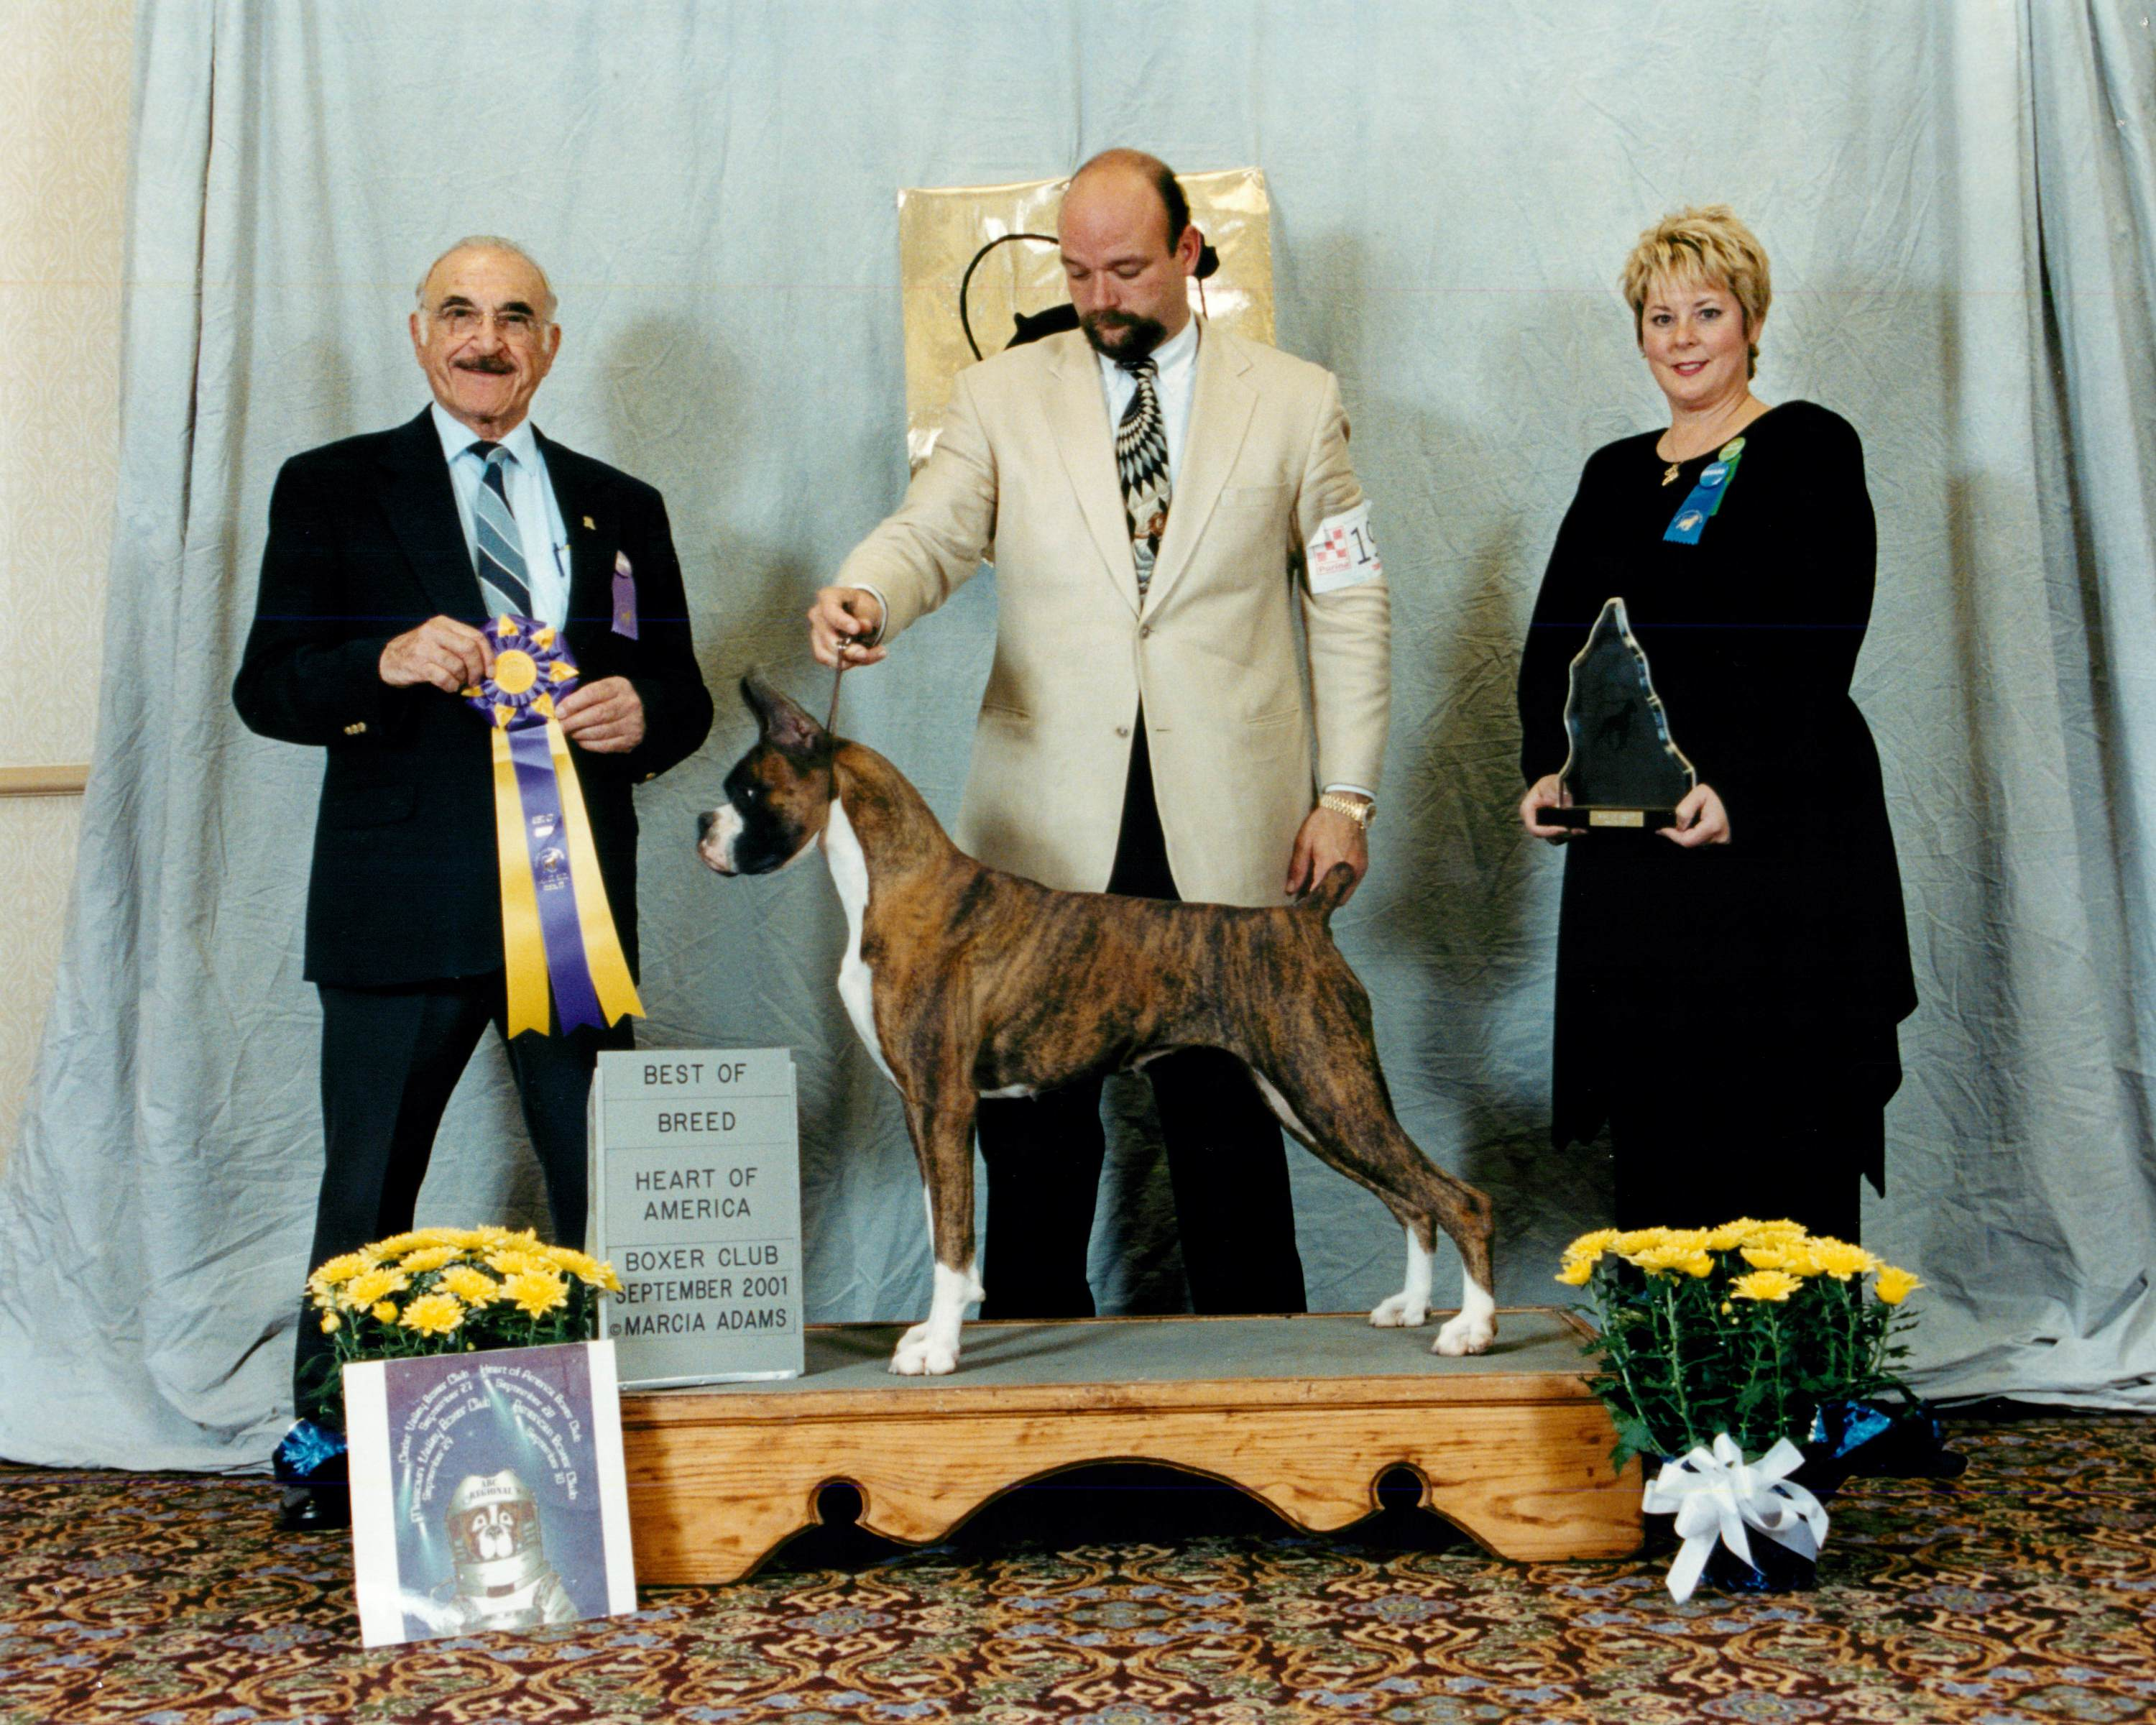 Best of Breed @ 2001 Specialty Show #2